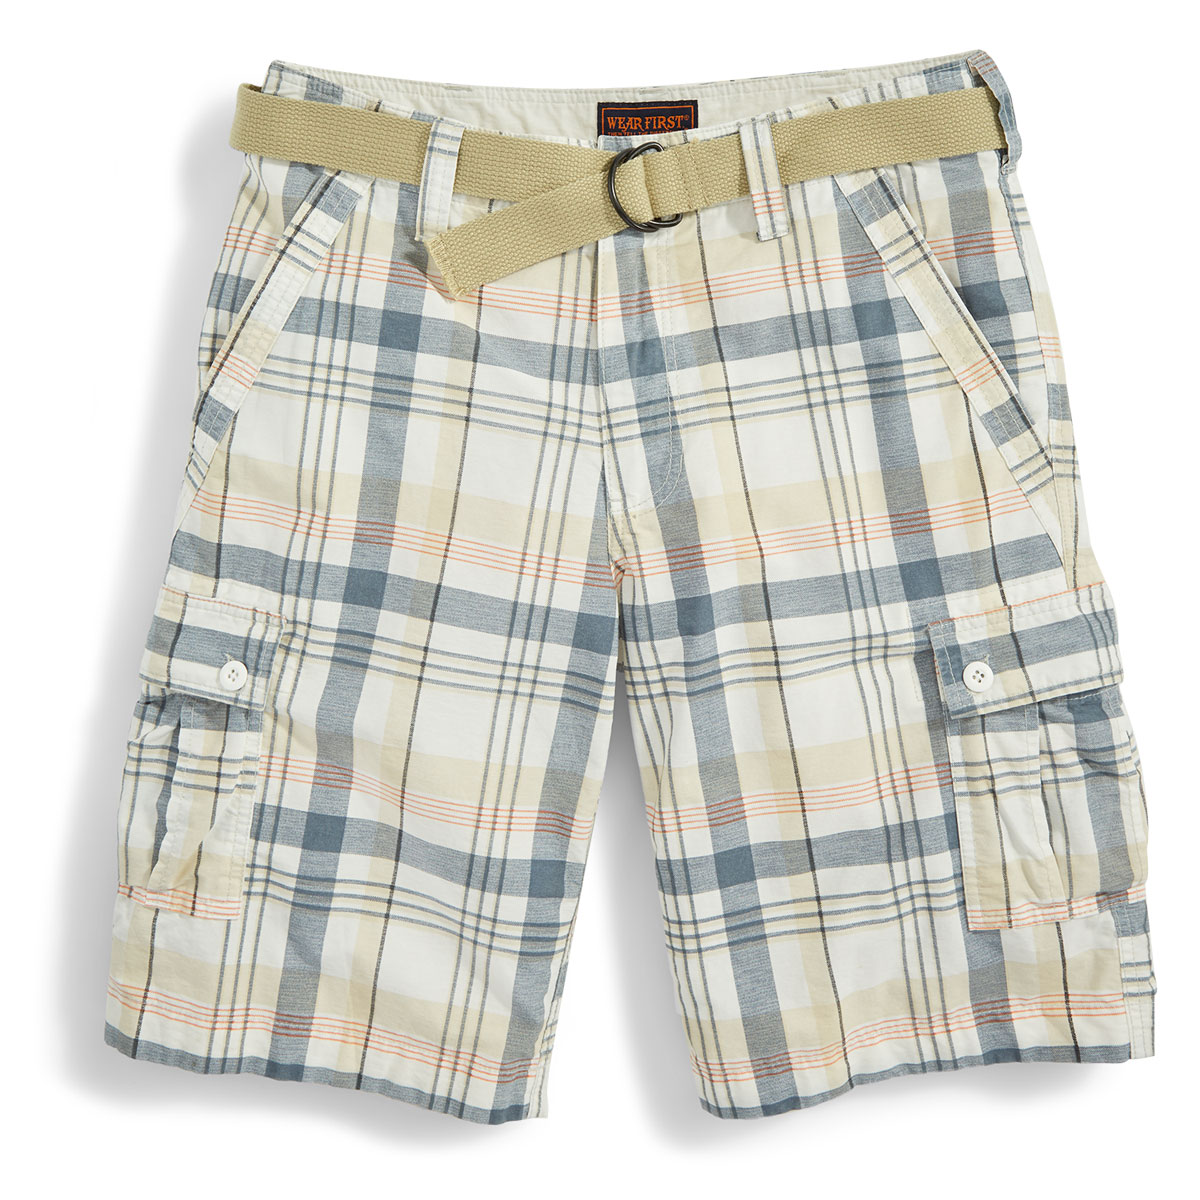 Wear First Guys' Belted Plaid Cargo Shorts - White, 29